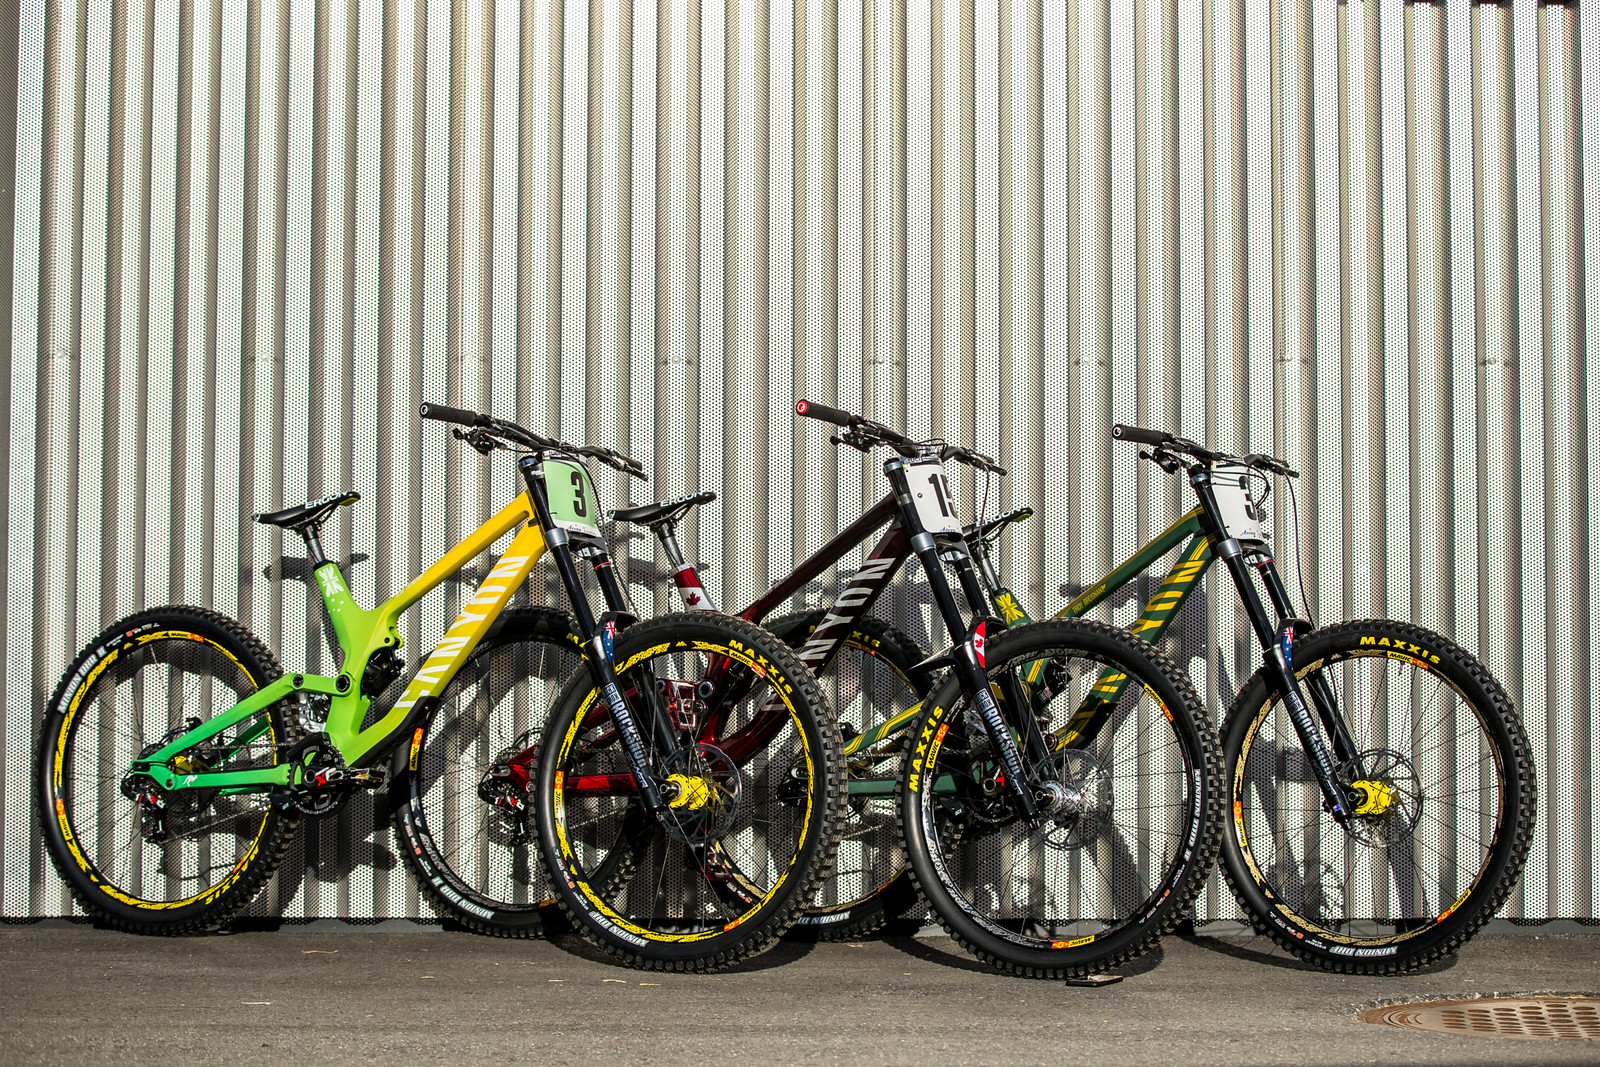 WORLD CHAMPS BIKES - Canyon Factory Racing - WORLD CHAMPS BIKES - Canyon Factory Racing - Mountain Biking Pictures - Vital MTB